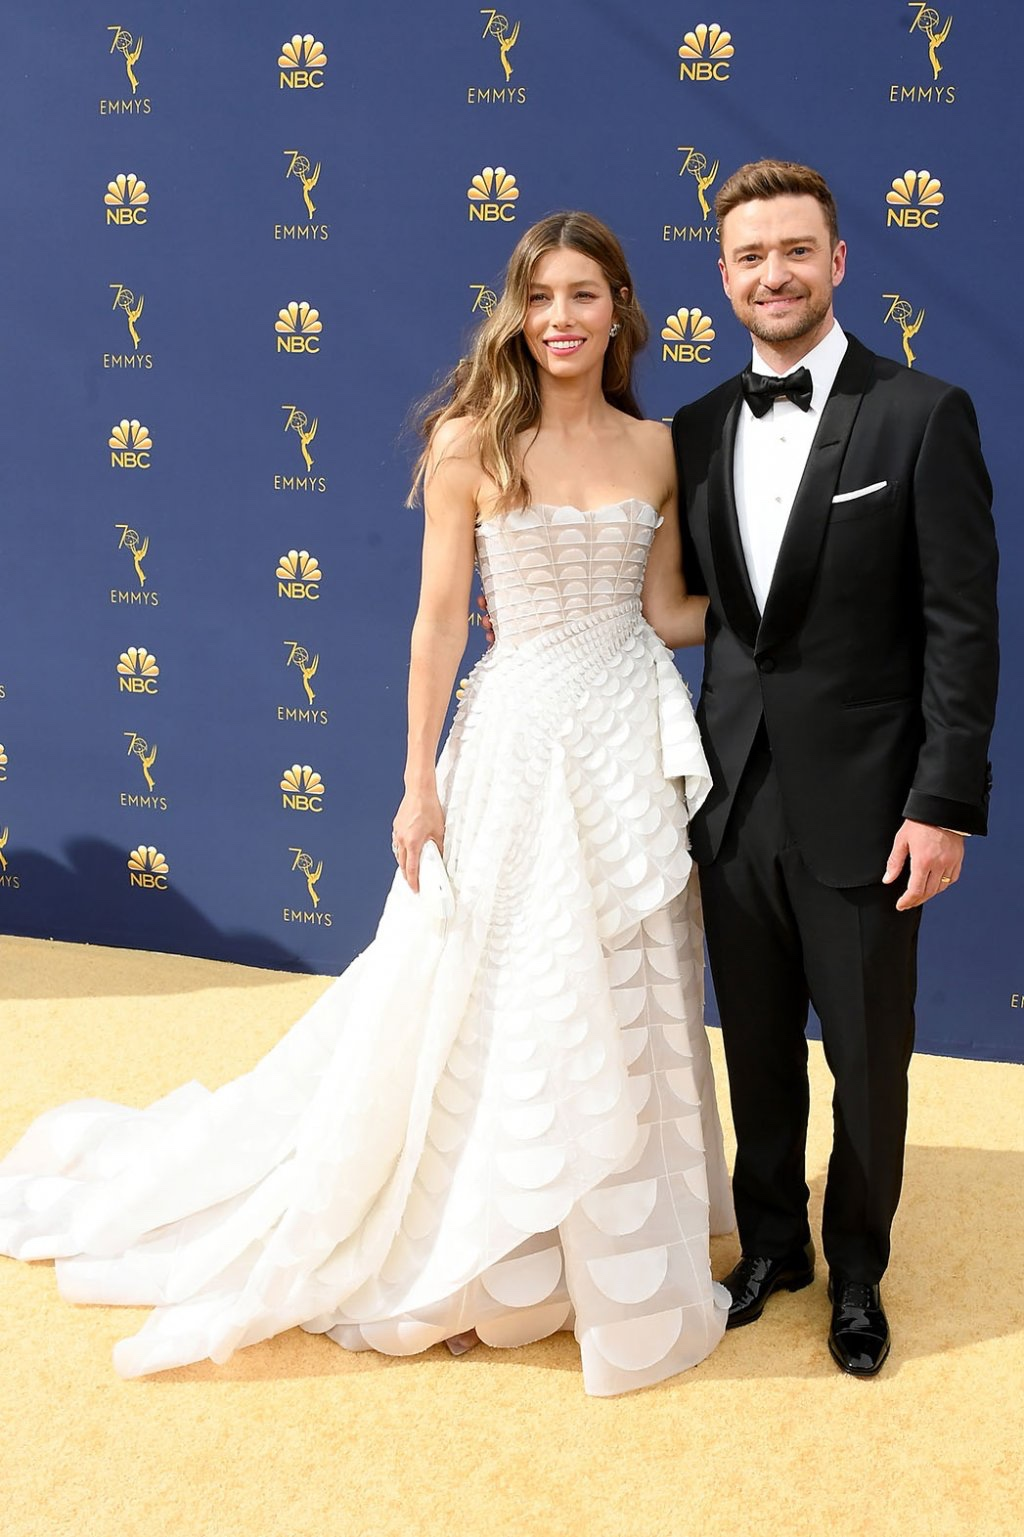 Jessica Biel in Ralph and Russo Couture with Justin Timberlake, 70th Annual Primetime Emmy Awards, Betty White, Emmys 2018, Fashion, Featured, Glenn Weiss, Hannah Gadsby, highlights, Jav Svendsen, Online Exclusive, Style, The Marvellous Mrs. Maisel, top moments, We solved it, Diversity